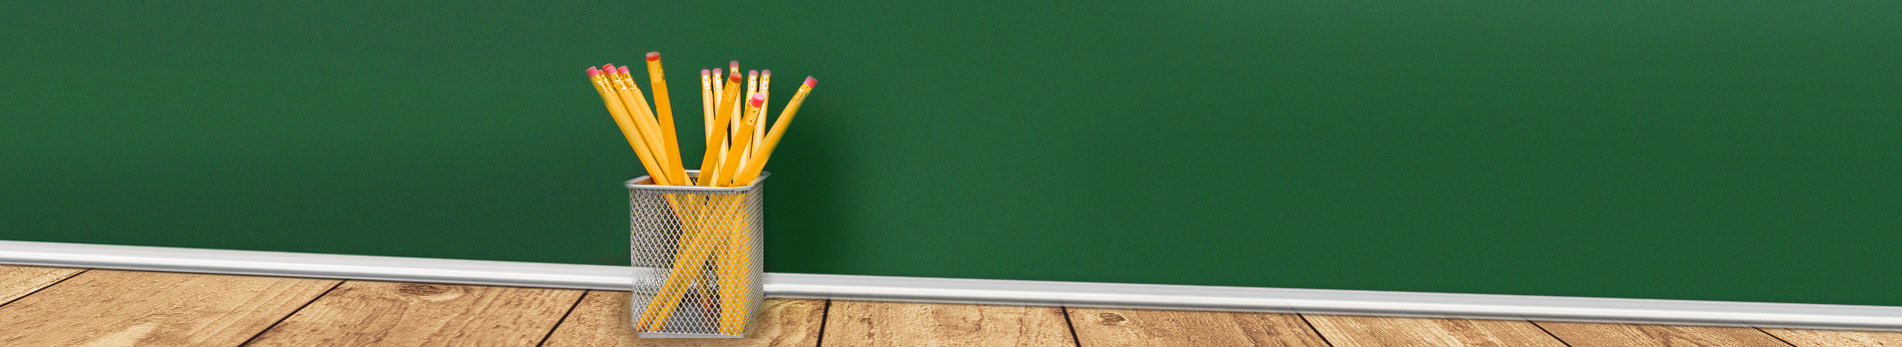 education banner01